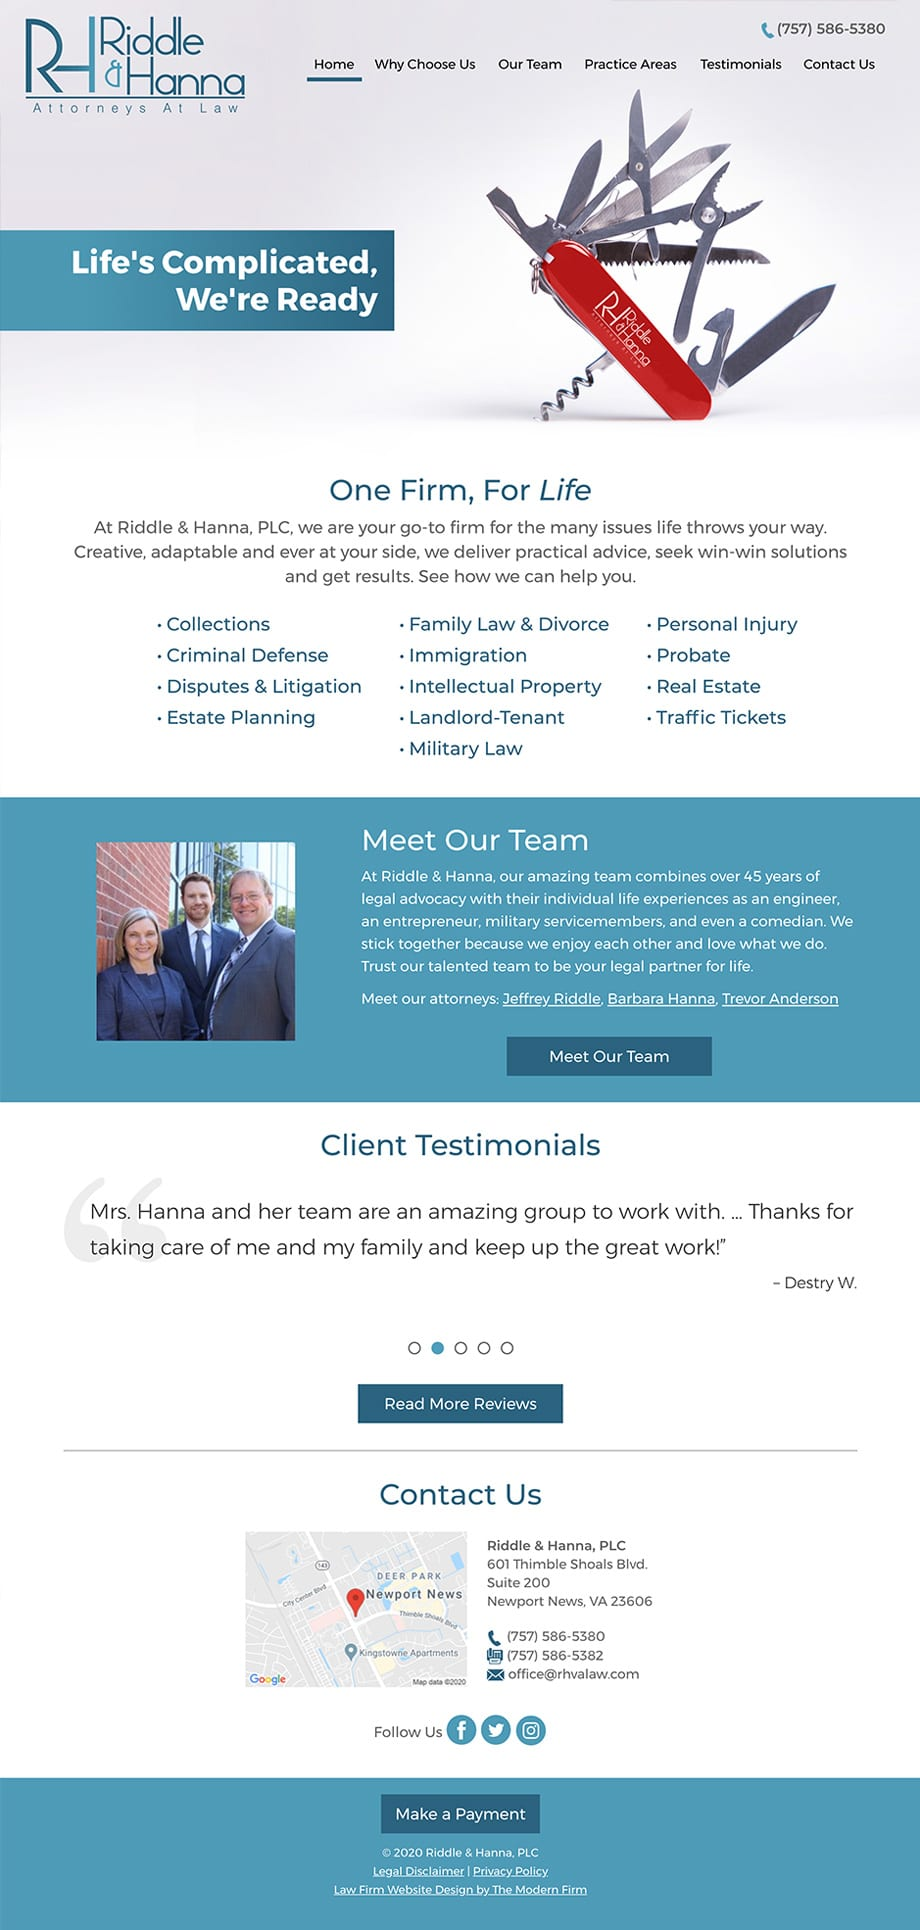 Law Firm Website for Riddle & Hanna, PLC